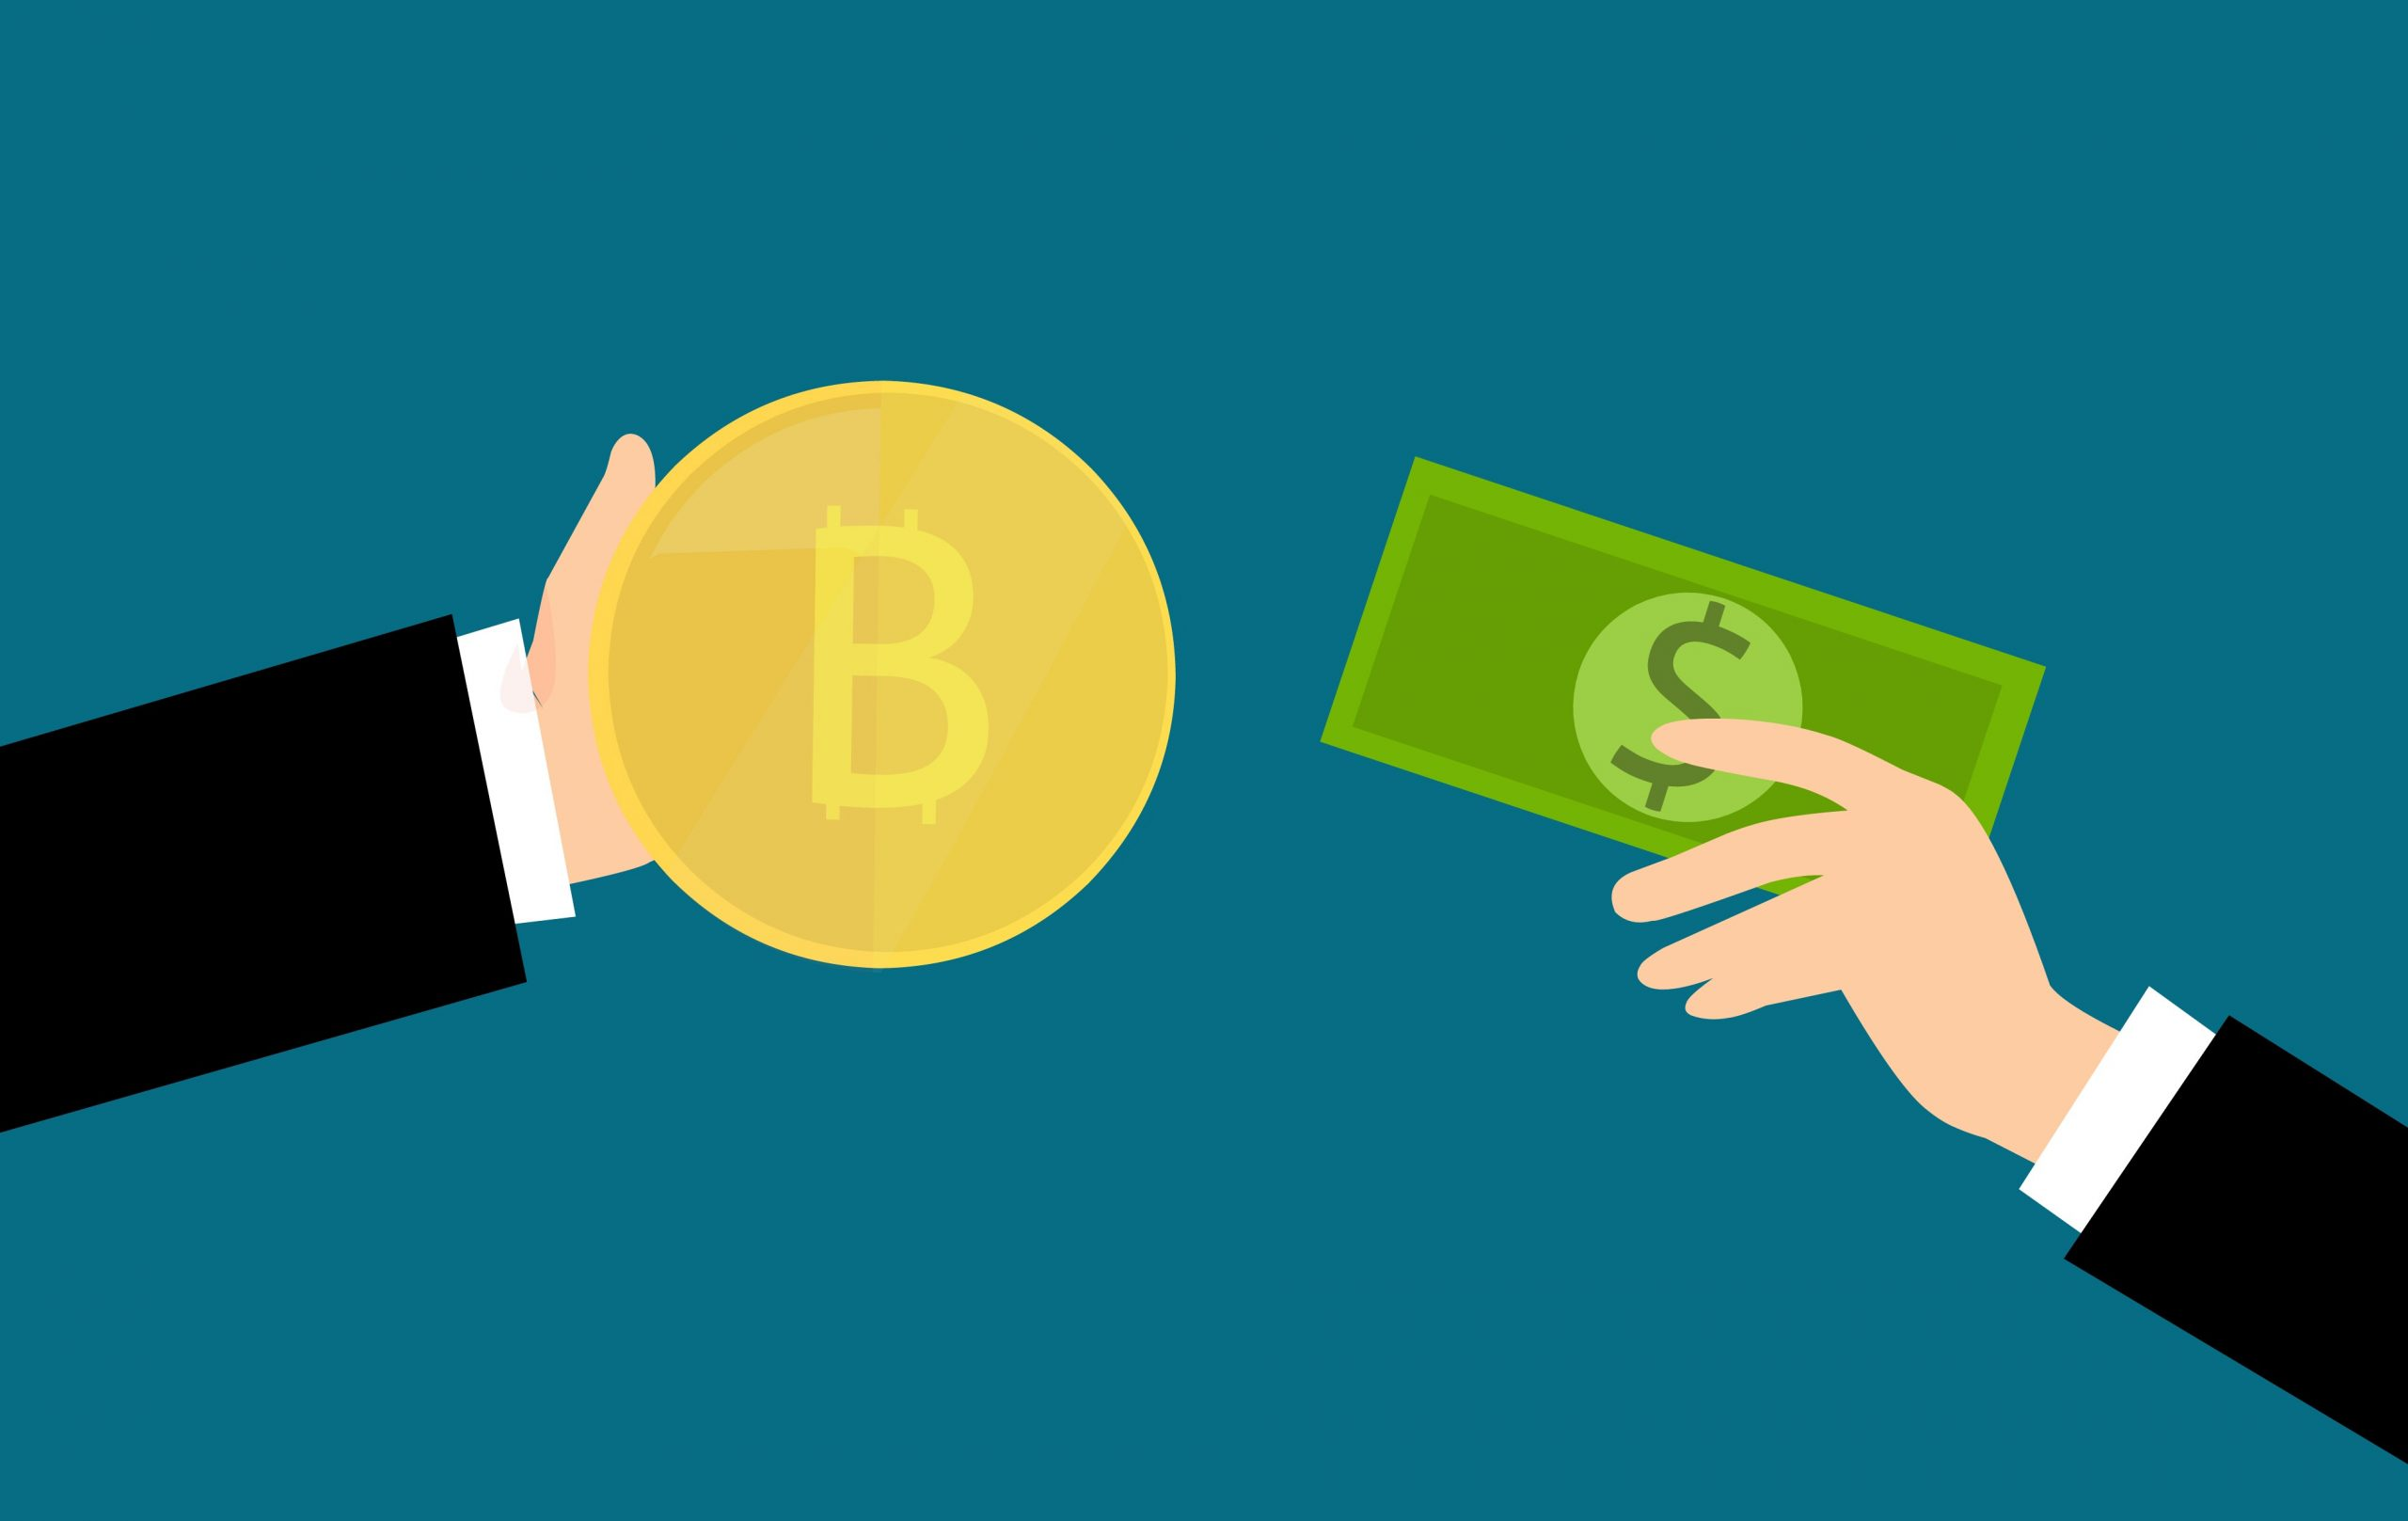 Picture of two animated hands exchanging paper currency for Bitcoin